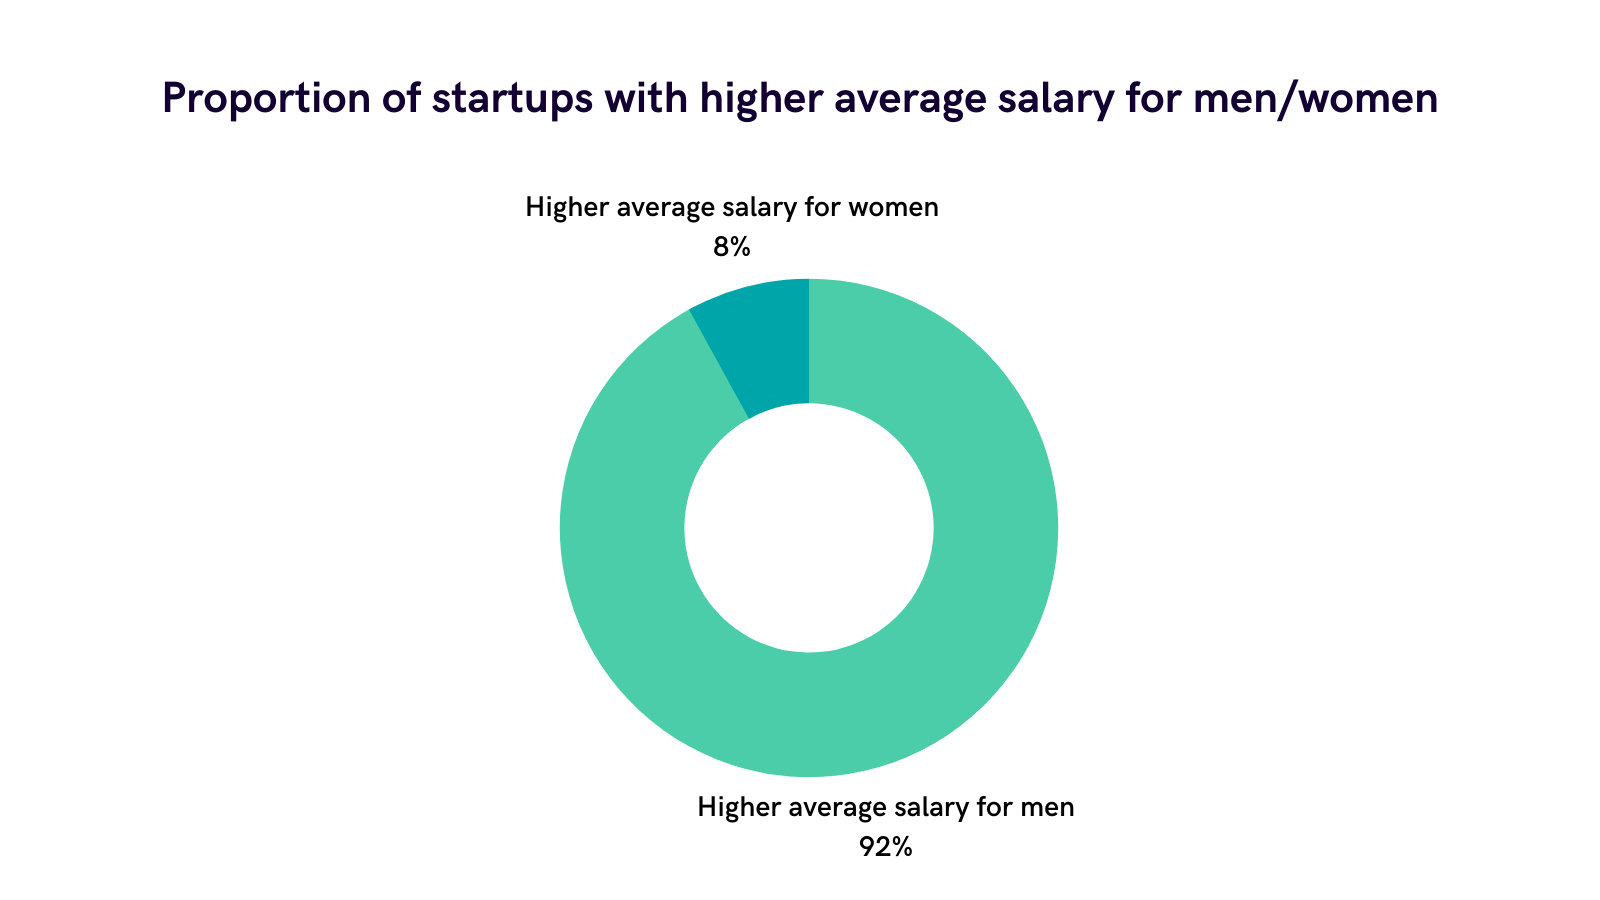 The UK gender pay gap is pronounced in startups - 92% have a positive gap